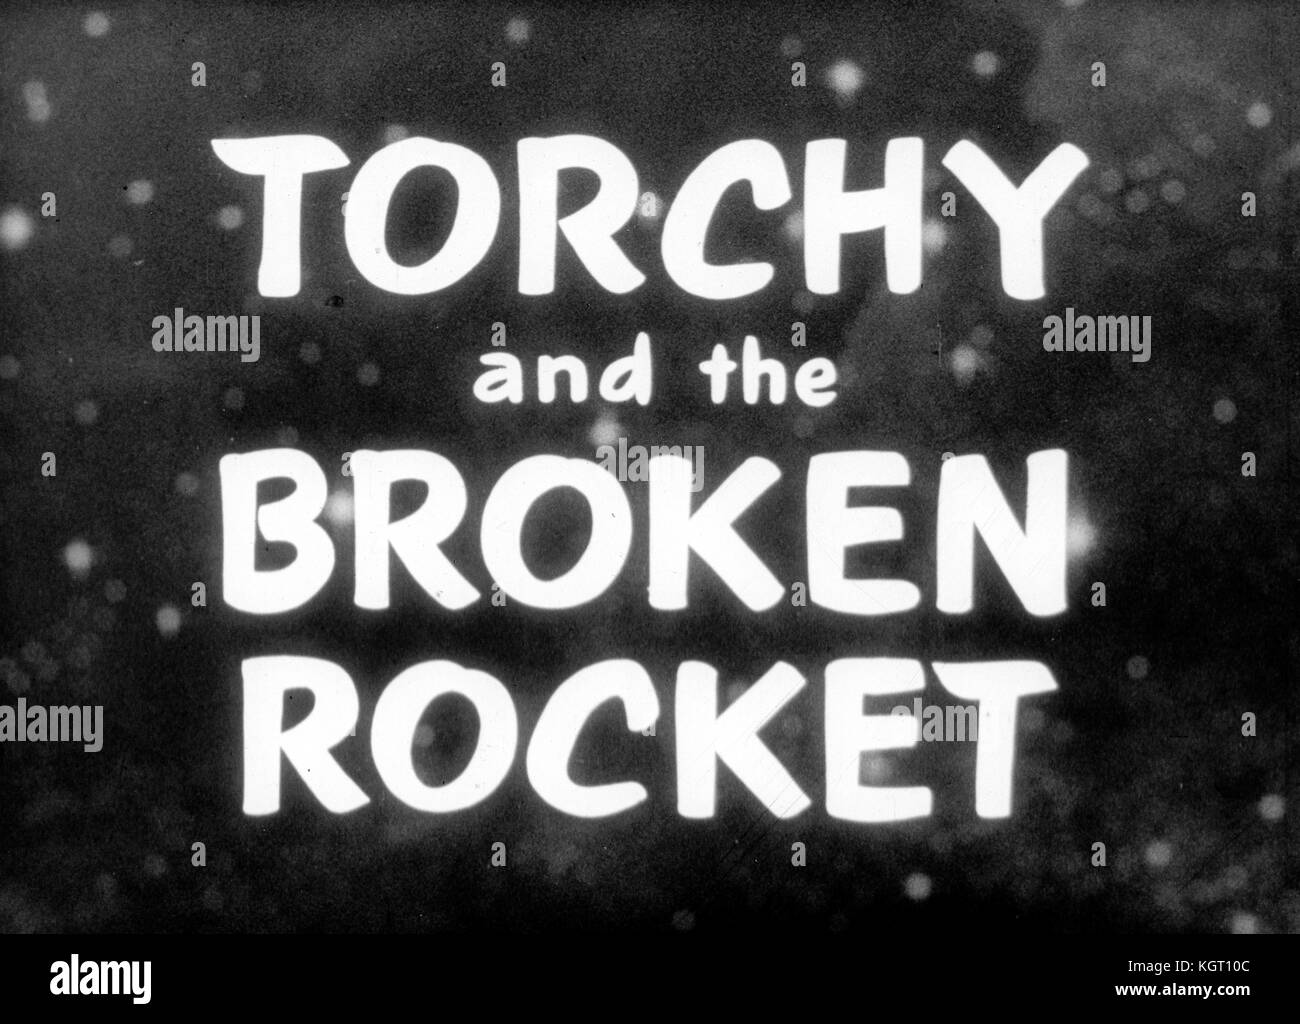 Torchy the Battery Boy (1957) TV series , Series One, Episode Five, Torchy and the Broken Rocket     Date: 1957 - Stock Image